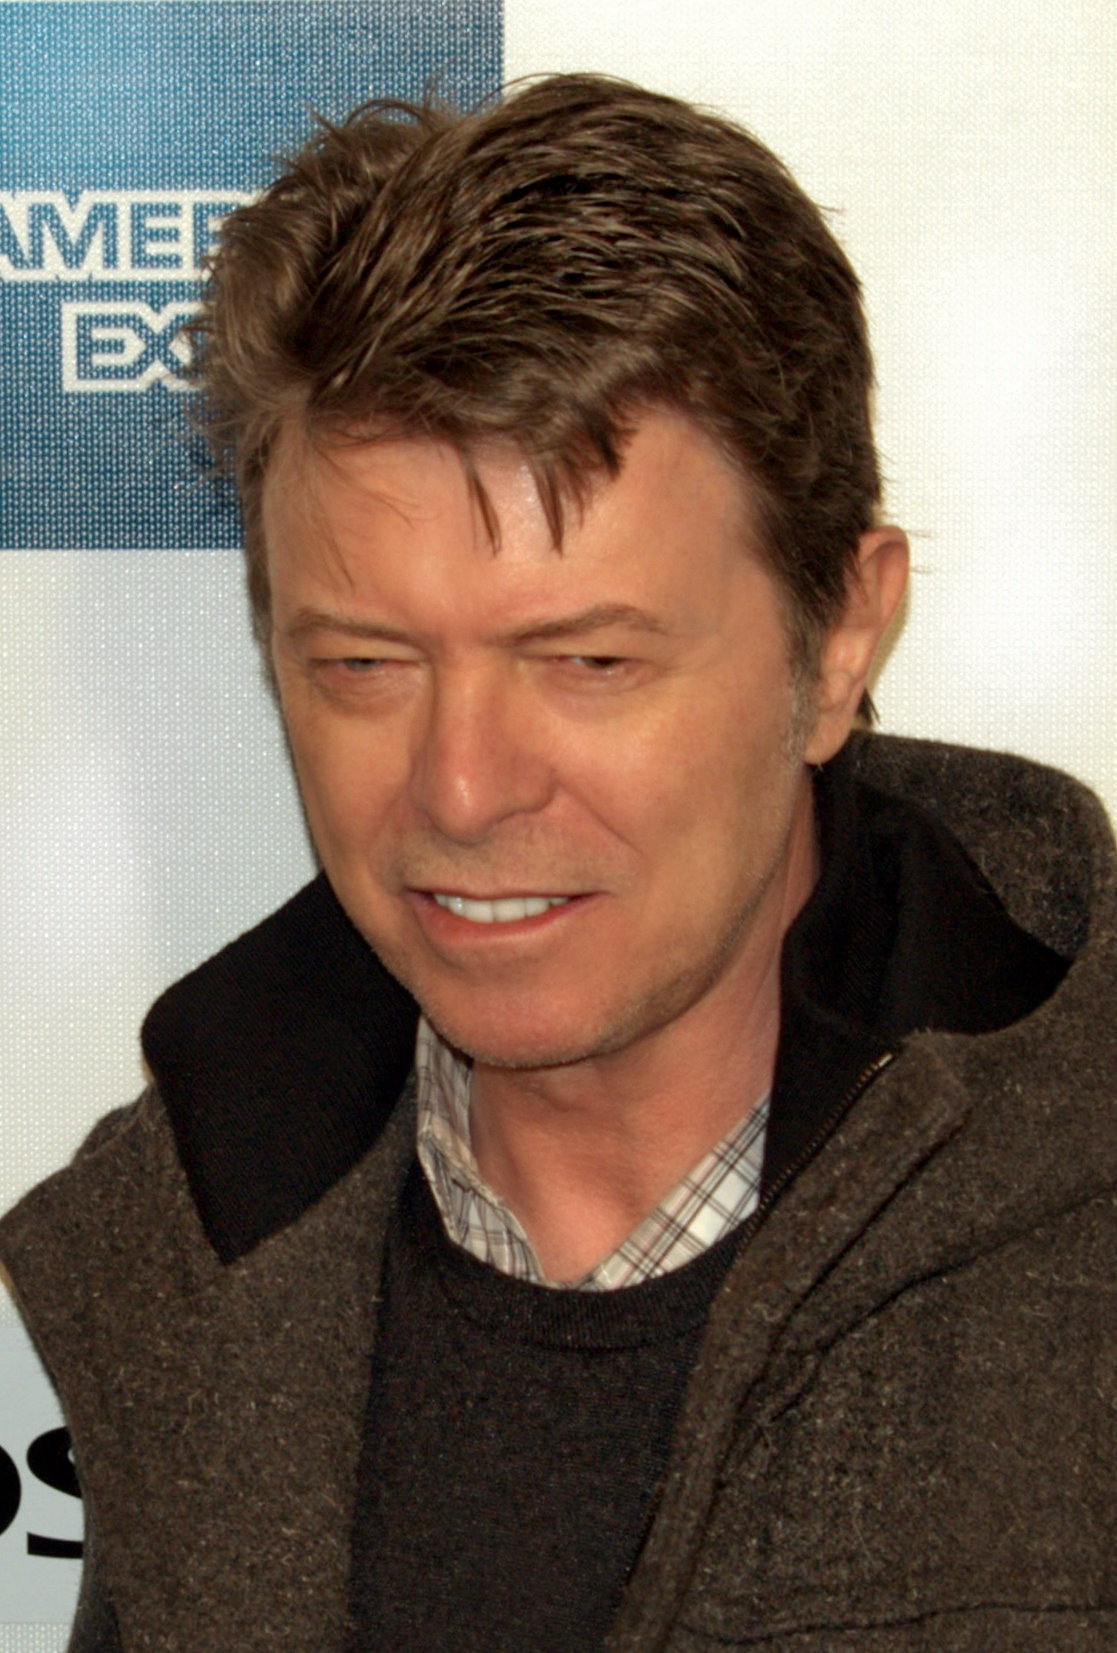 David Bowie filmography - Wikipedia